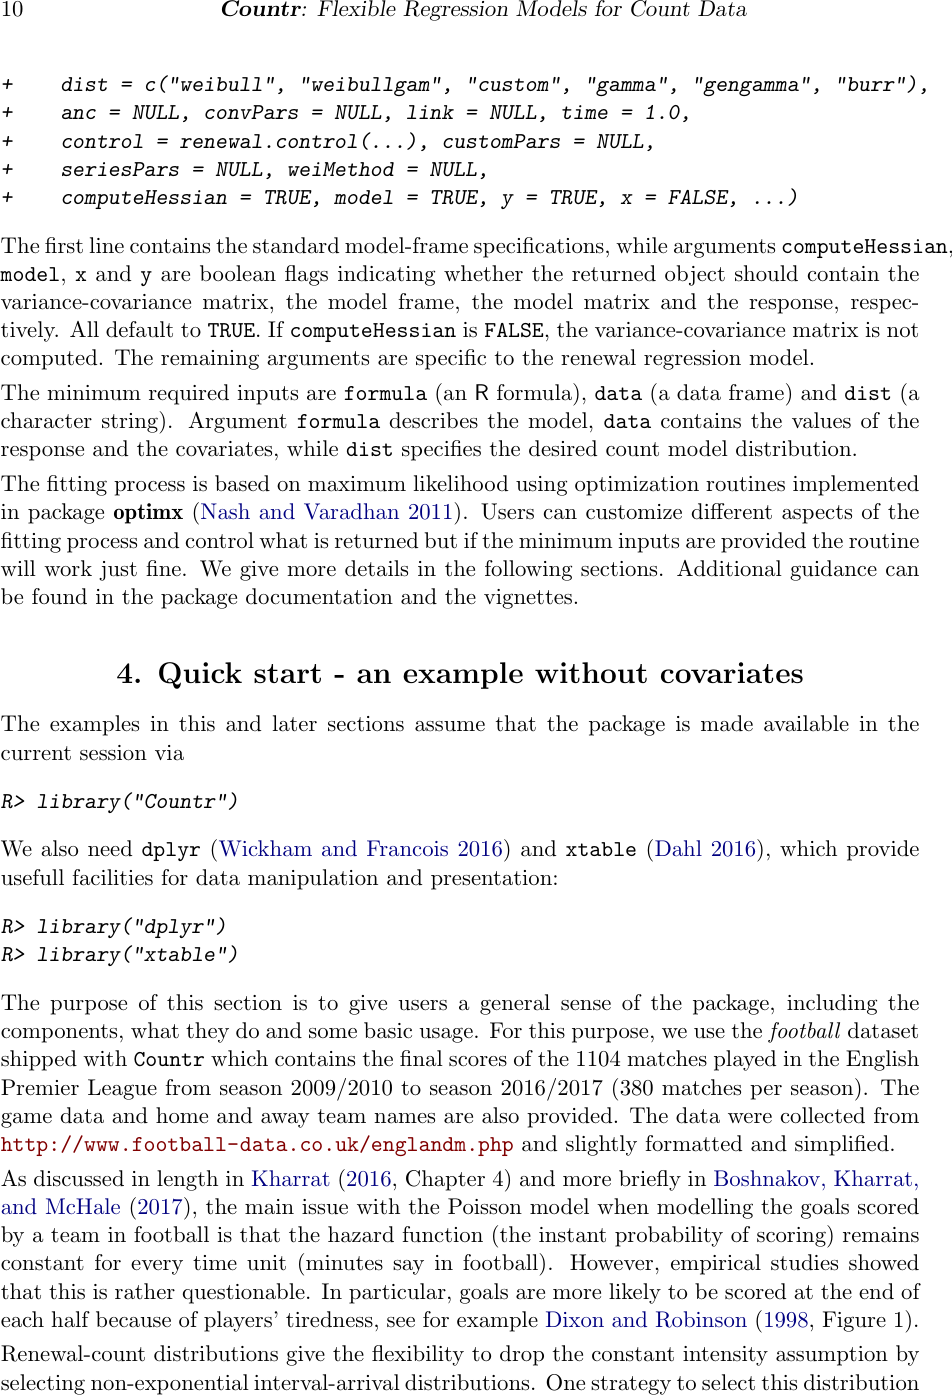 Flexible Regression For Count Data Based On Renewal Processes: The